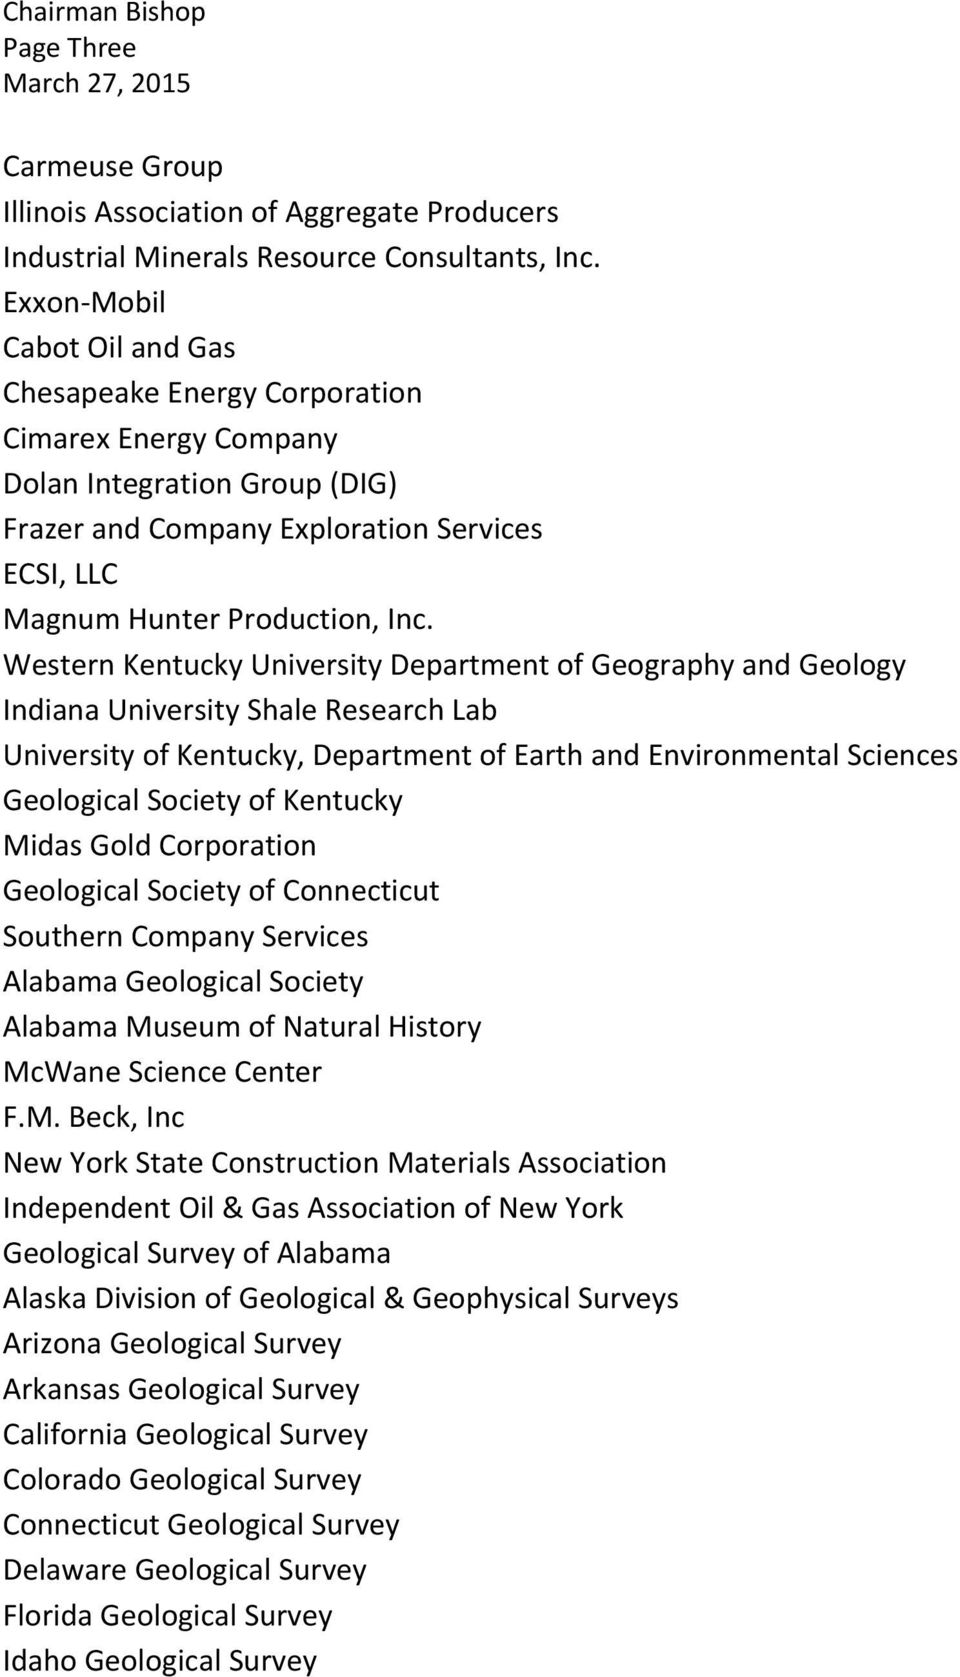 Western Kentucky University Department of Geography and Geology Indiana University Shale Research Lab University of Kentucky, Department of Earth and Environmental Sciences Geological Society of